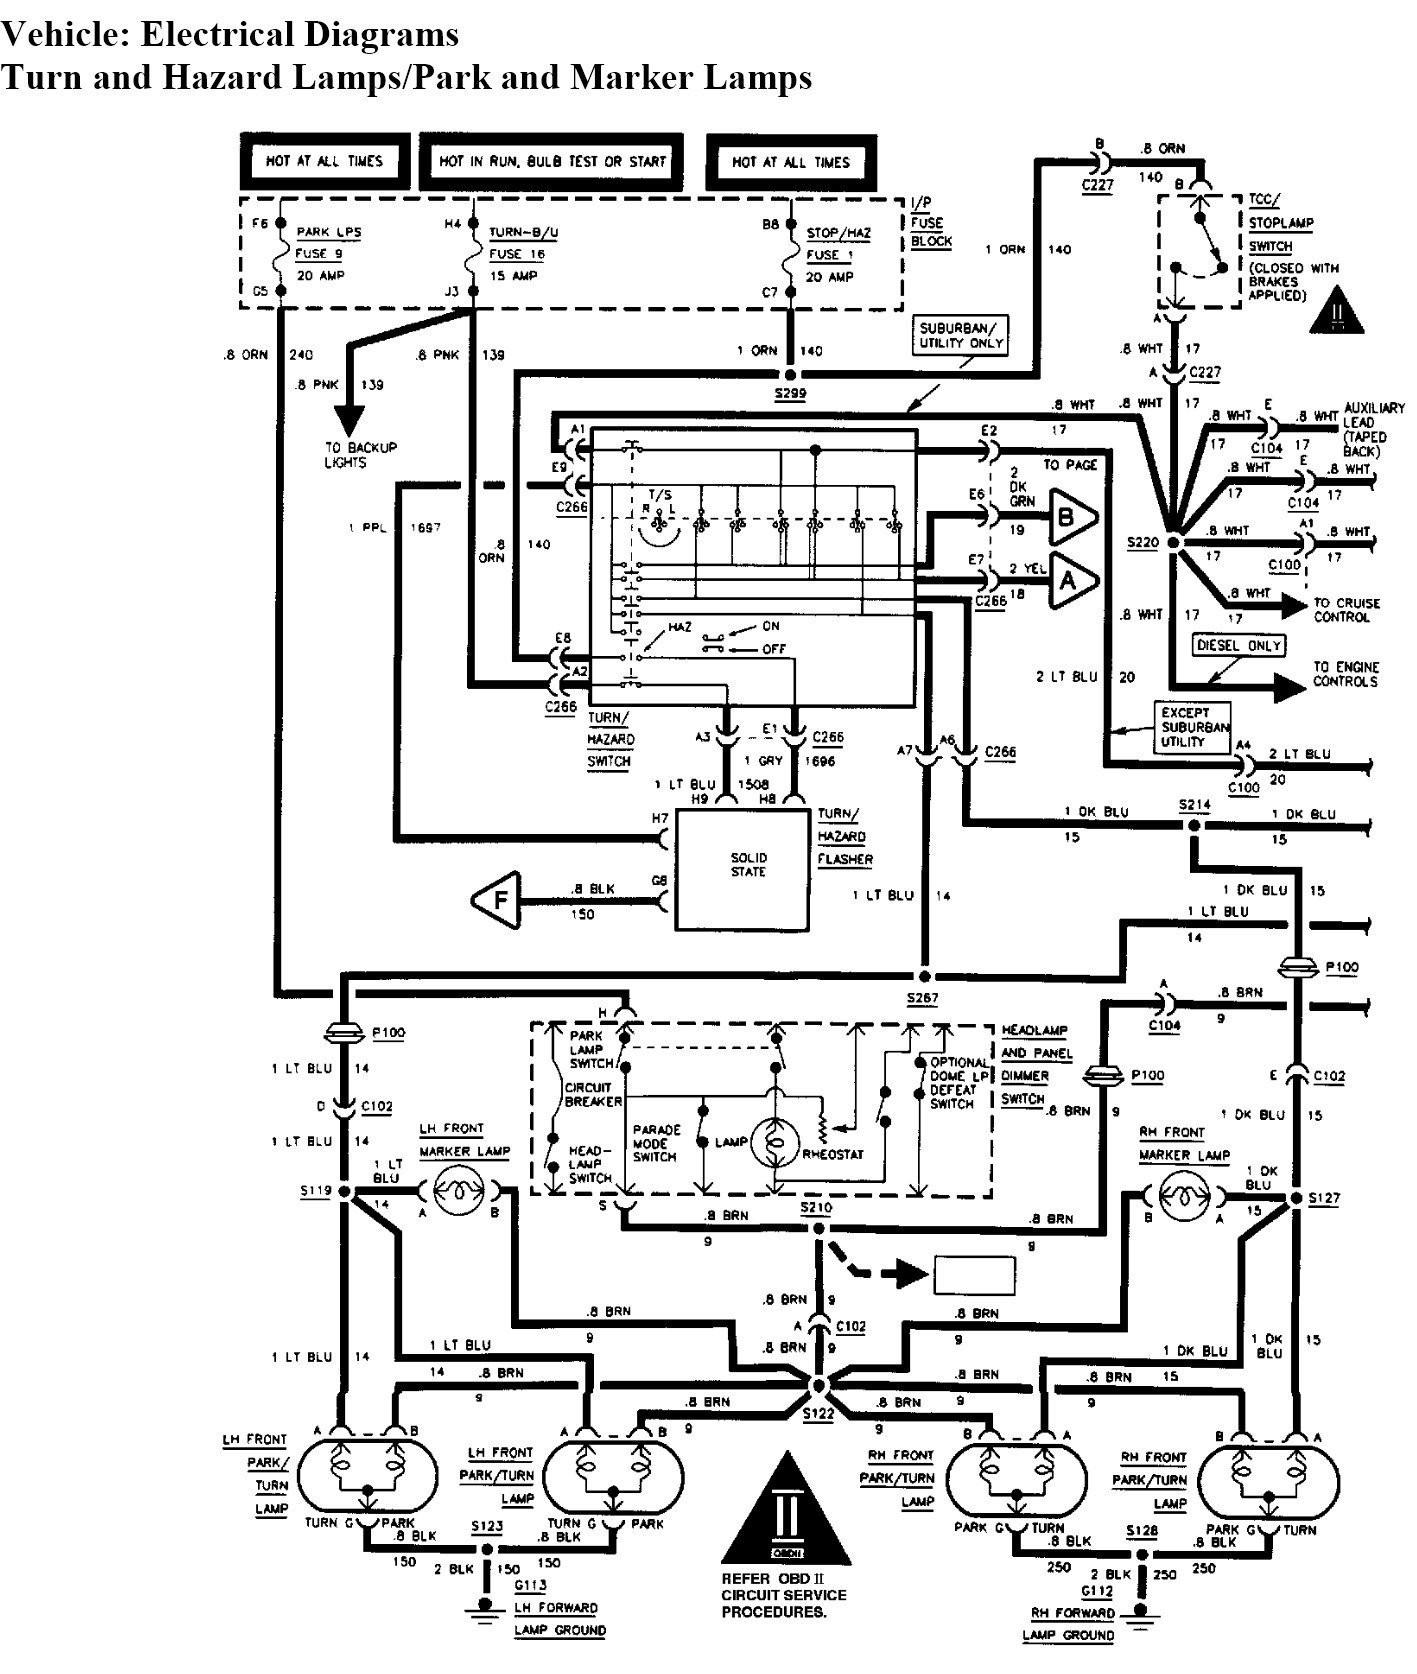 Jeep Grand Cherokee Laredo Engine Diagram Wiring Library 2008 Exhaust System Schematic Diagrams 2002 2000